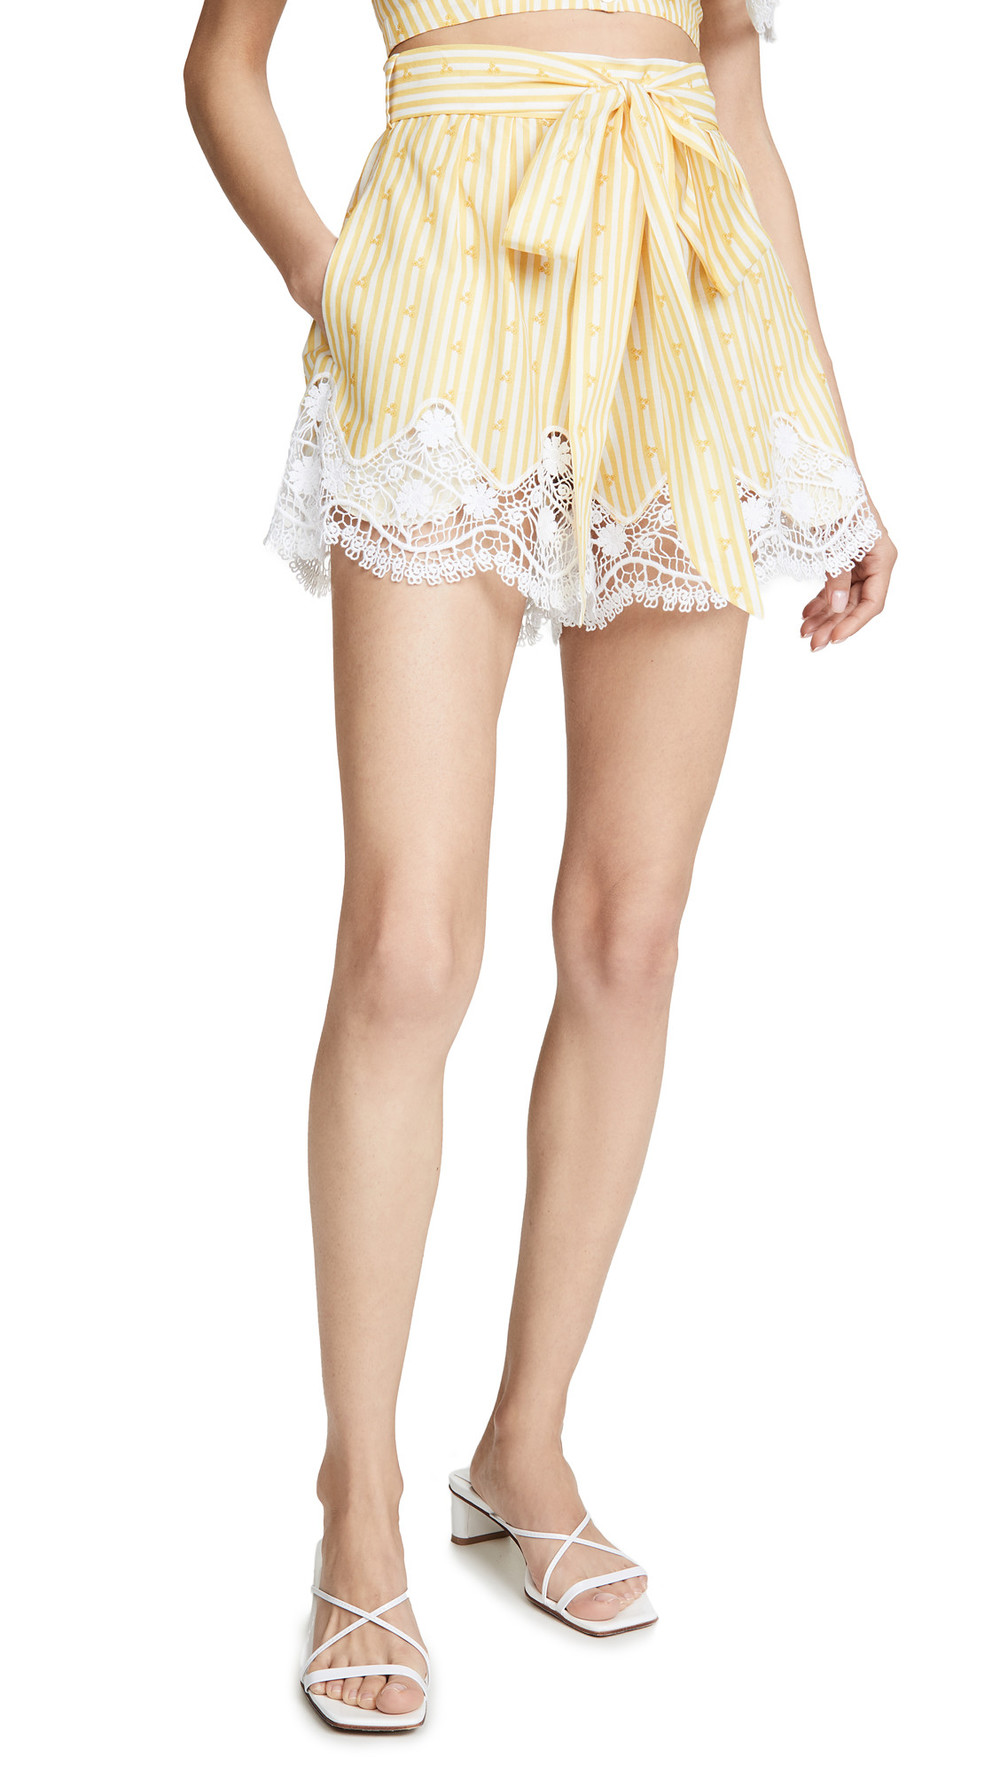 Miguelina Liana Shorts in yellow